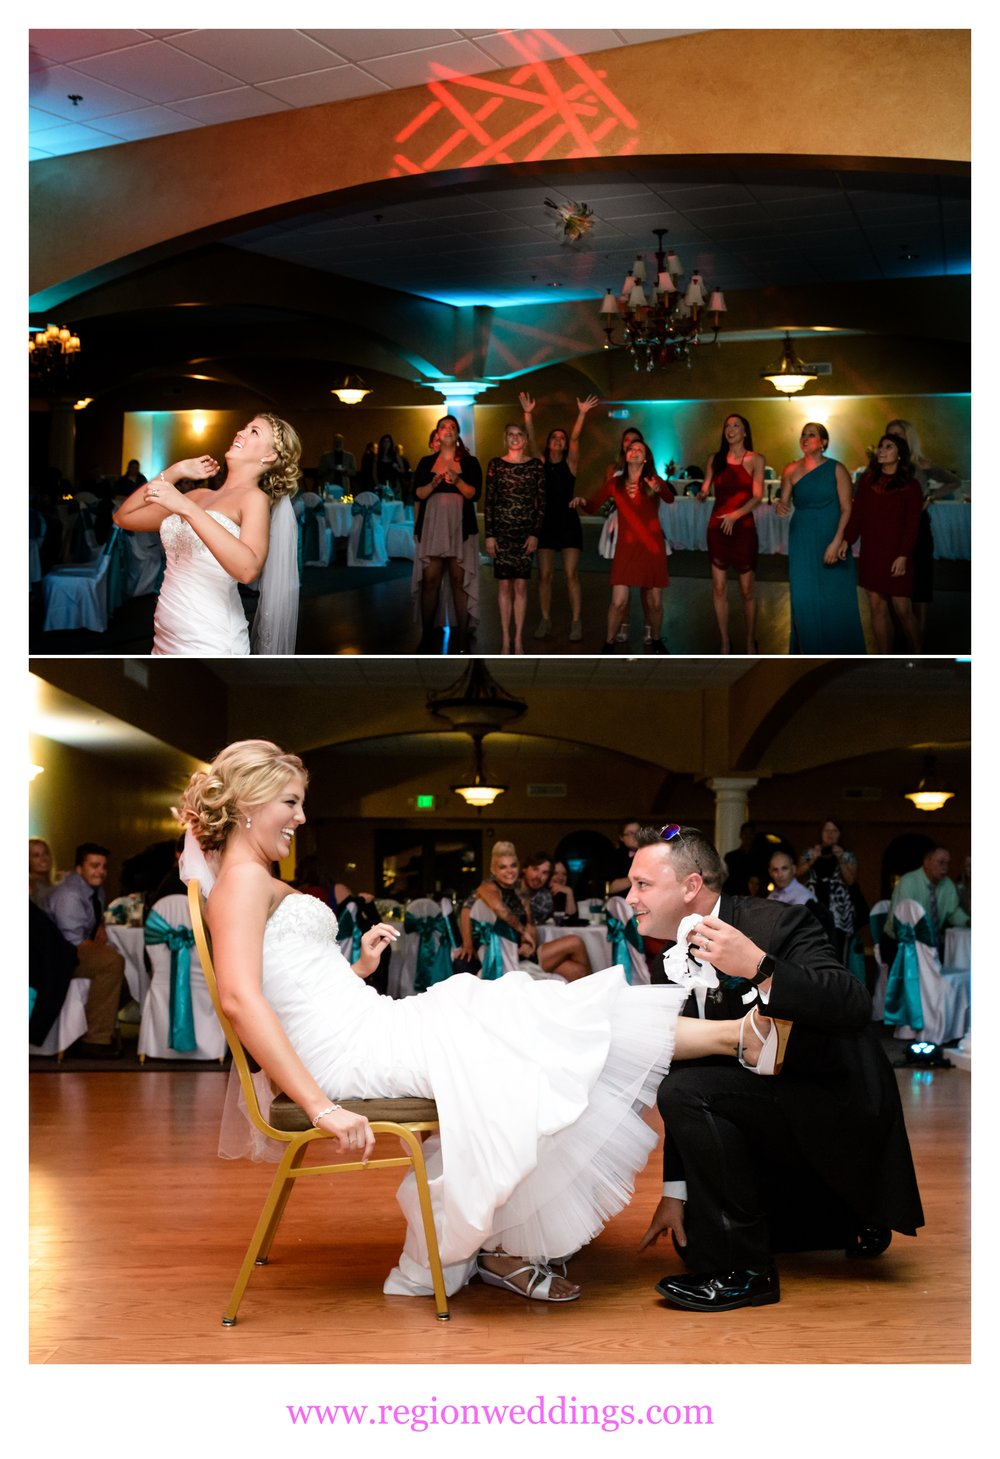 Bouquet and garter toss at Trinity Hall in Chesterton, Indiana.